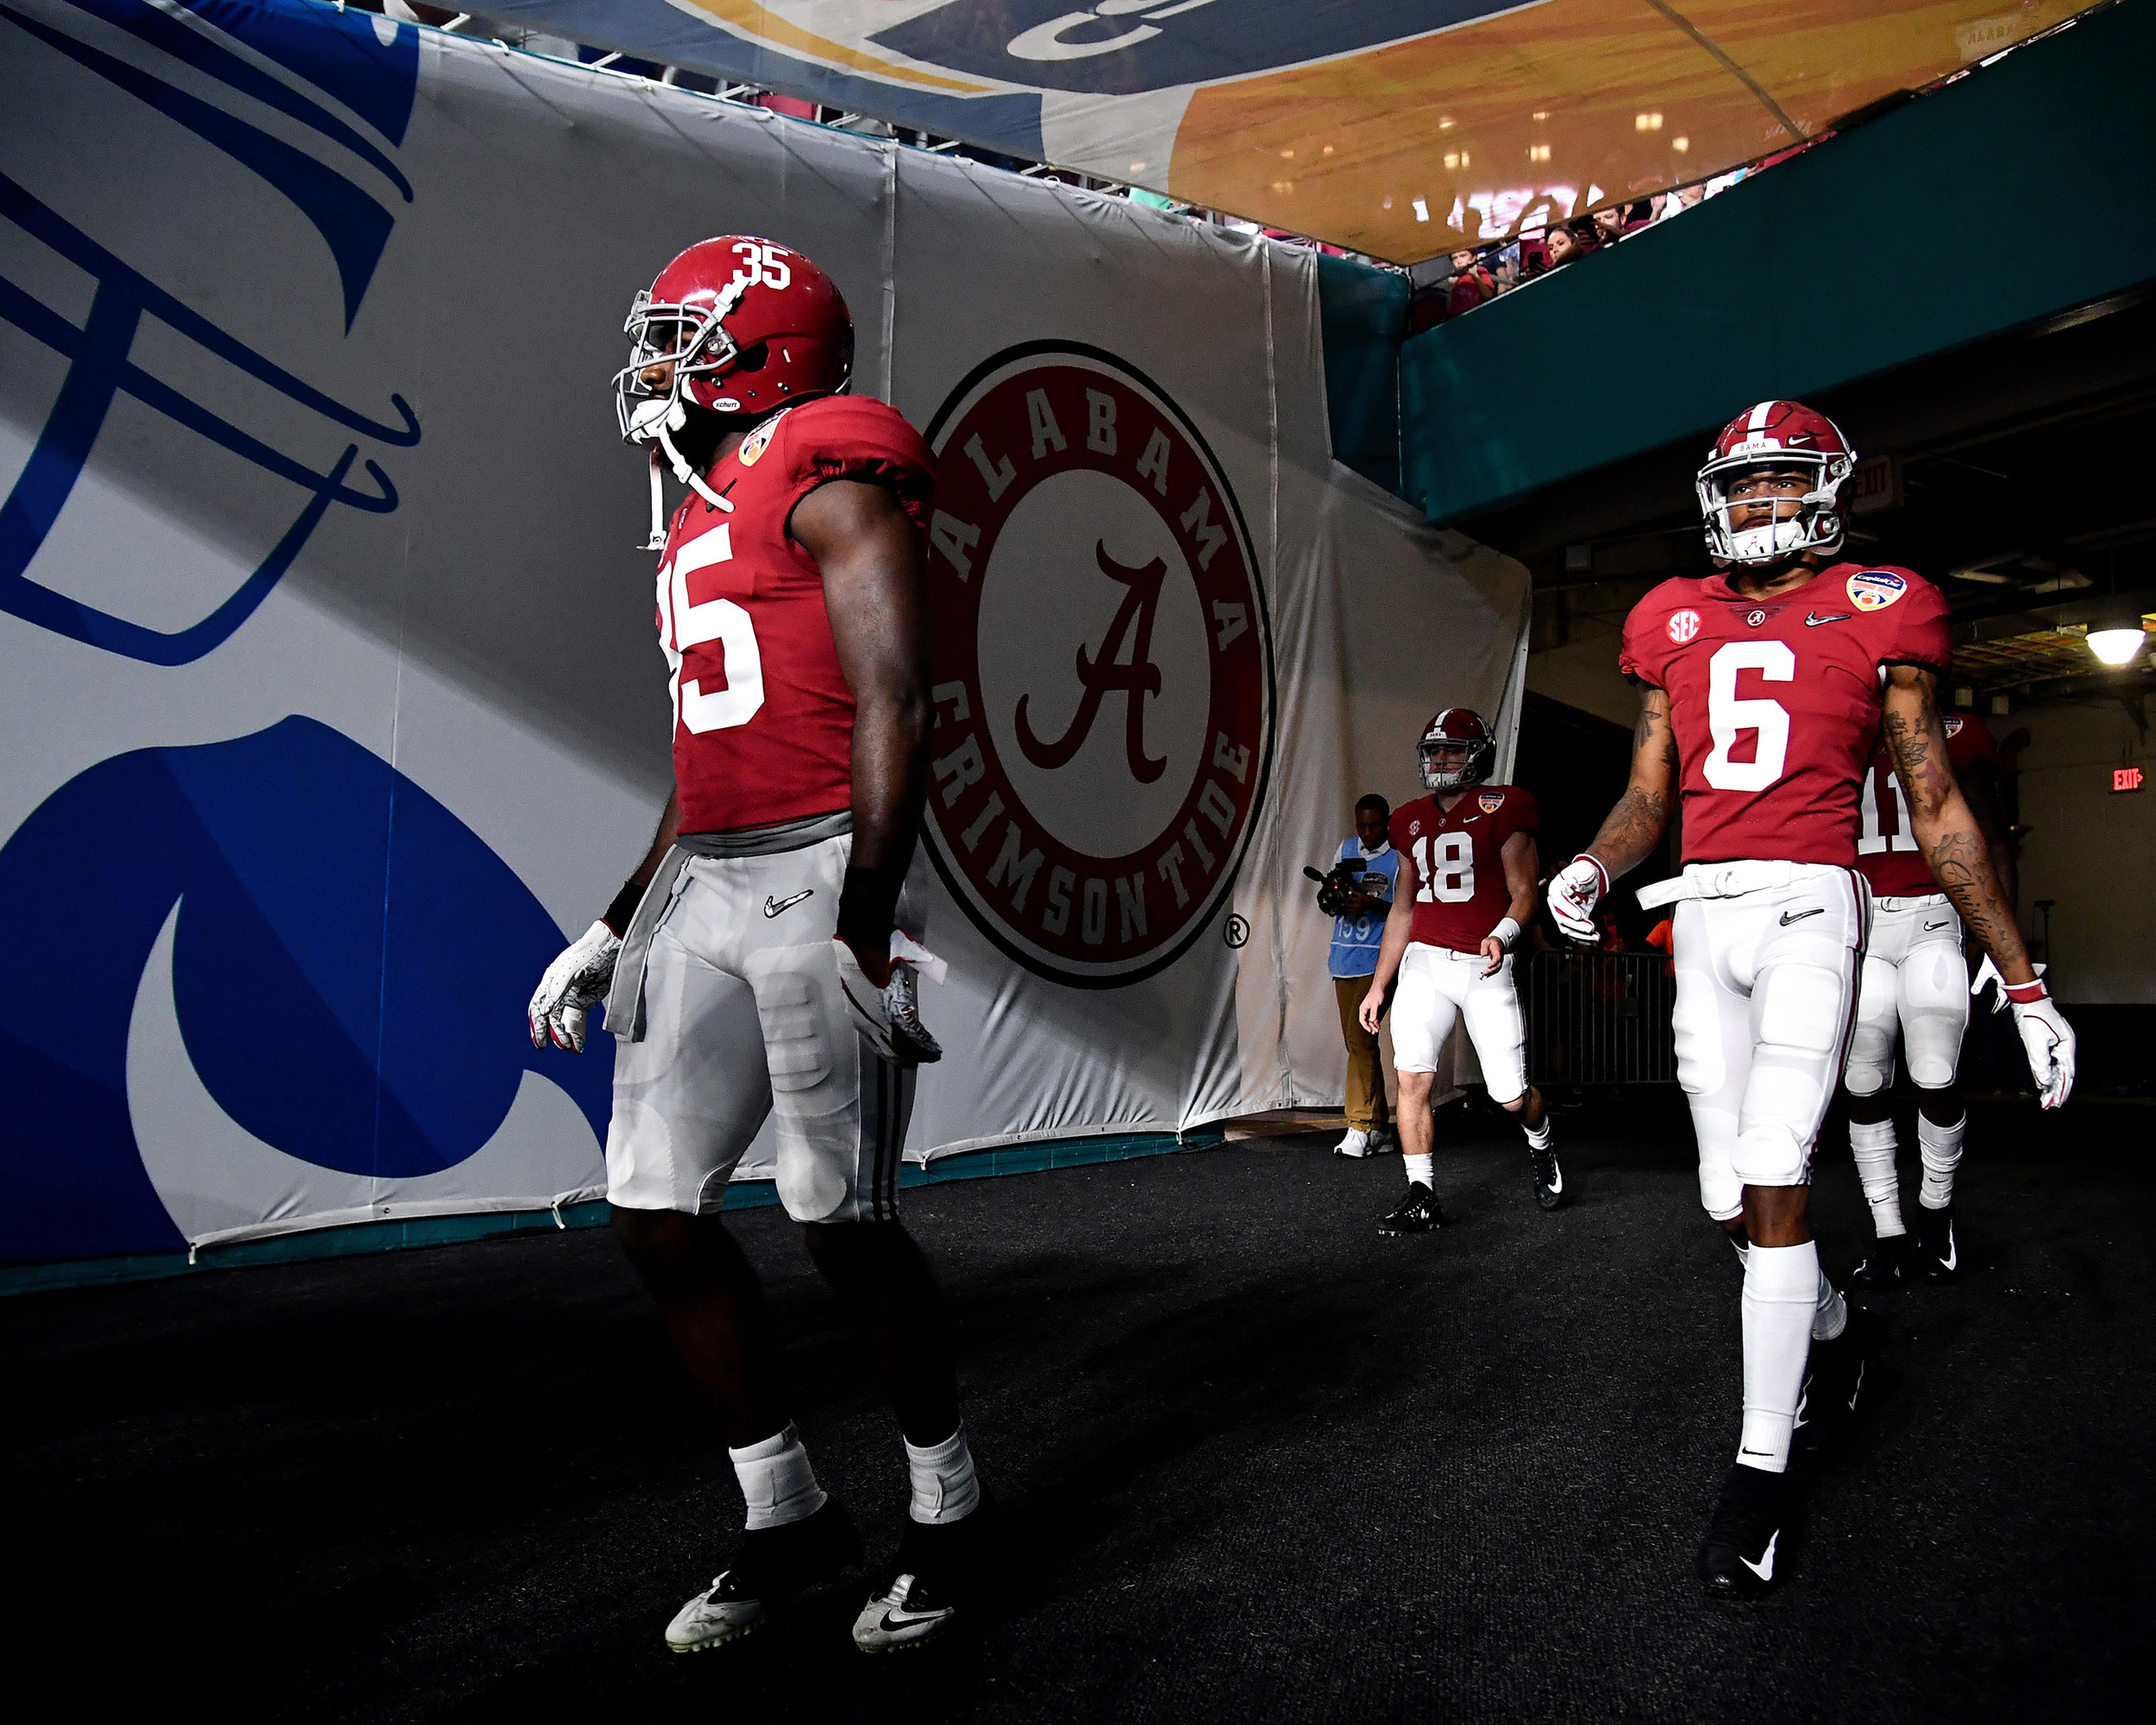 Players exit the tunnel prior to the kickoff of the Capital One Orange Bowl, featuring the Alabama Crimson Tide and the Oklahoma Sooners, at Hard Rock Stadium in Miami Gardens, Fla., Saturday, Dec. 29, 2018. Alabama wins 45-34. (Photo by Lee Walls)